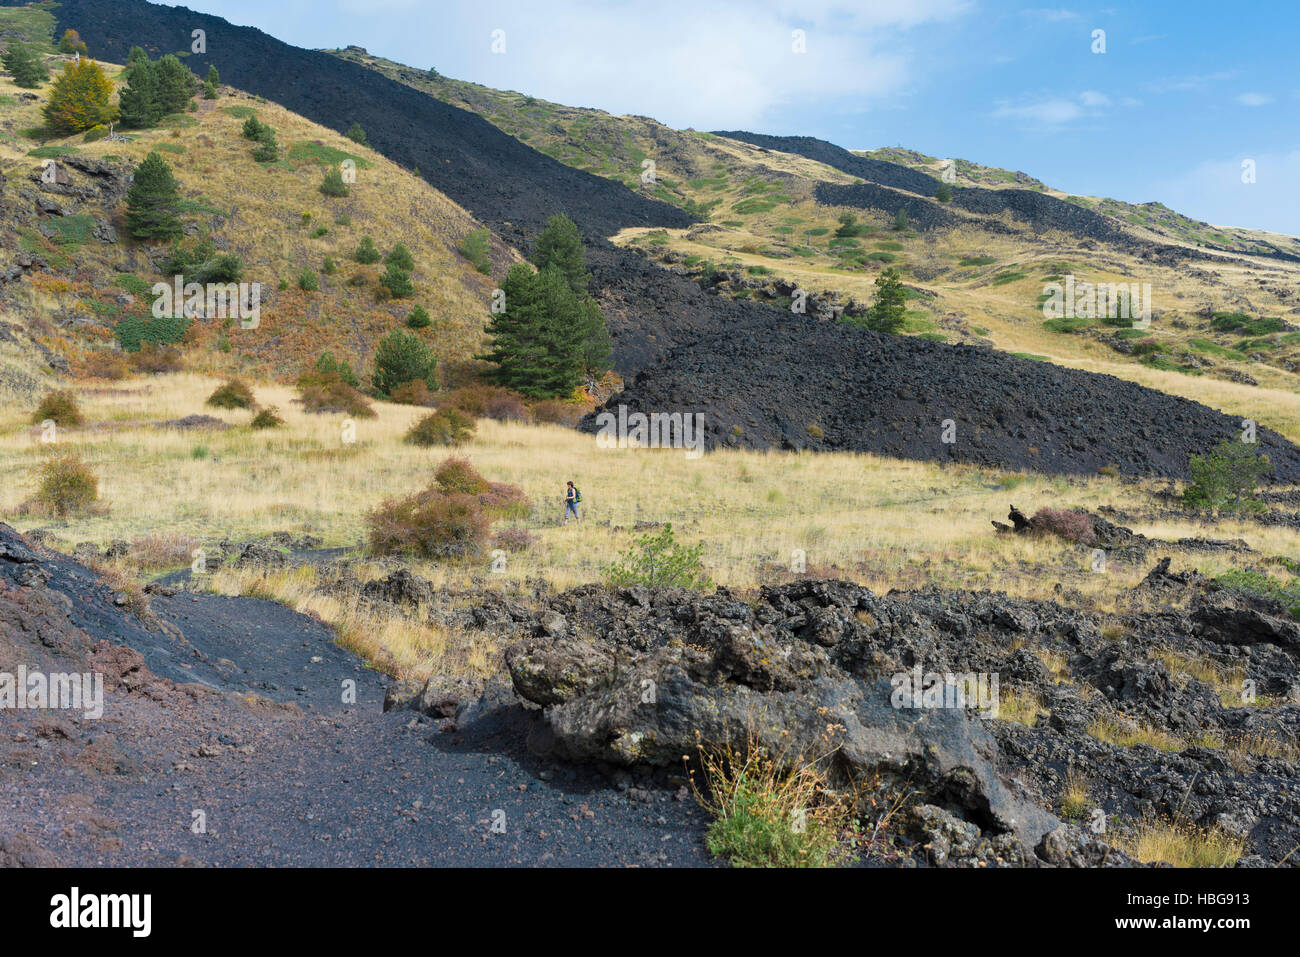 Hiking through lava fields of 1787, lava fields of 1983, Mount Etna, Sicily, Italy - Stock Image